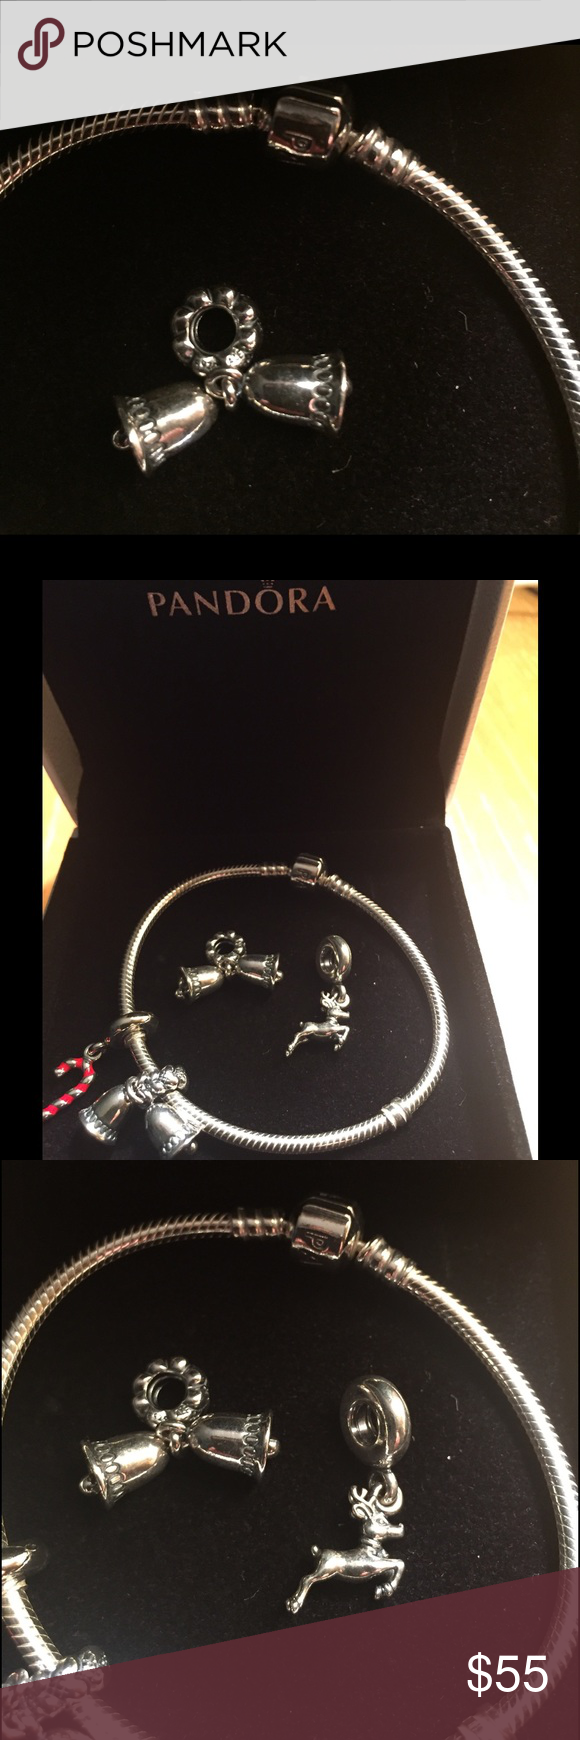 Authentic Pandora Charm Silver authentic Pandora charm. All reasonable offers considered. Pandora Jewelry Bracelets